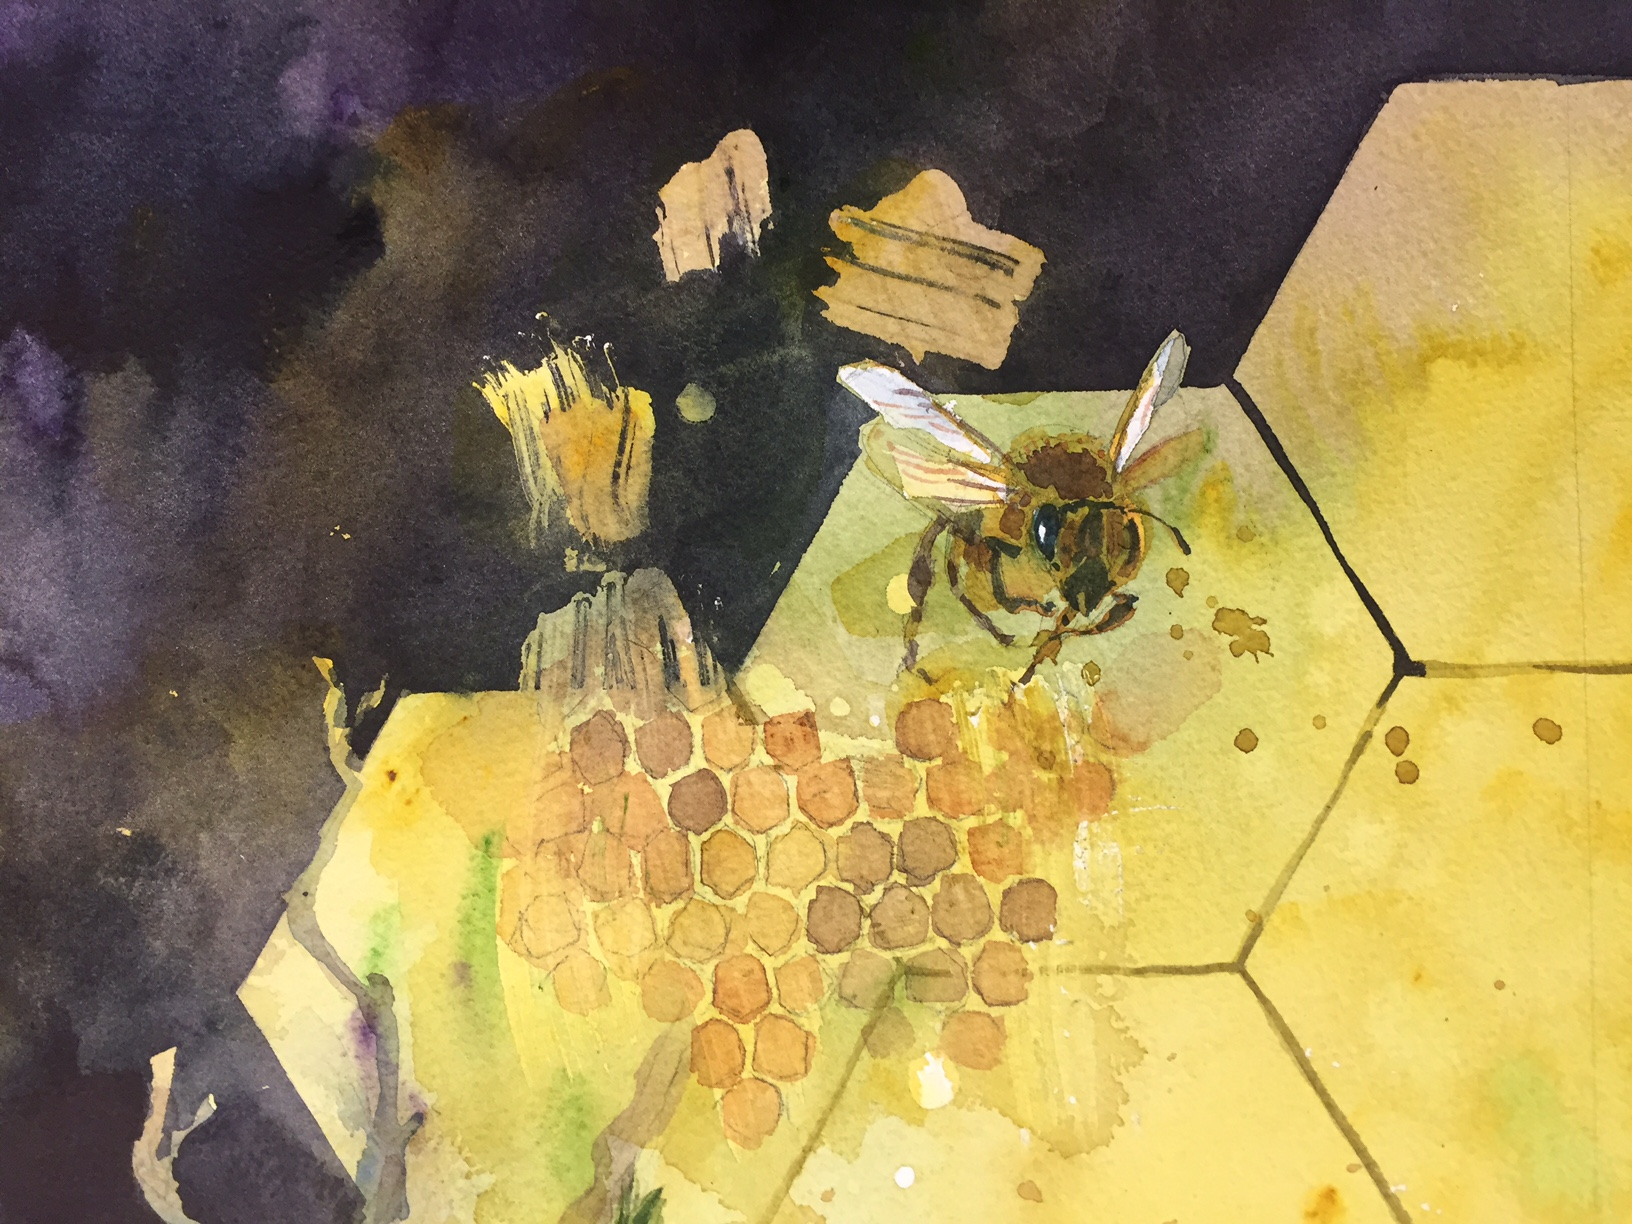 Watercolor artist magazine review - Detail Of The Work In Progress